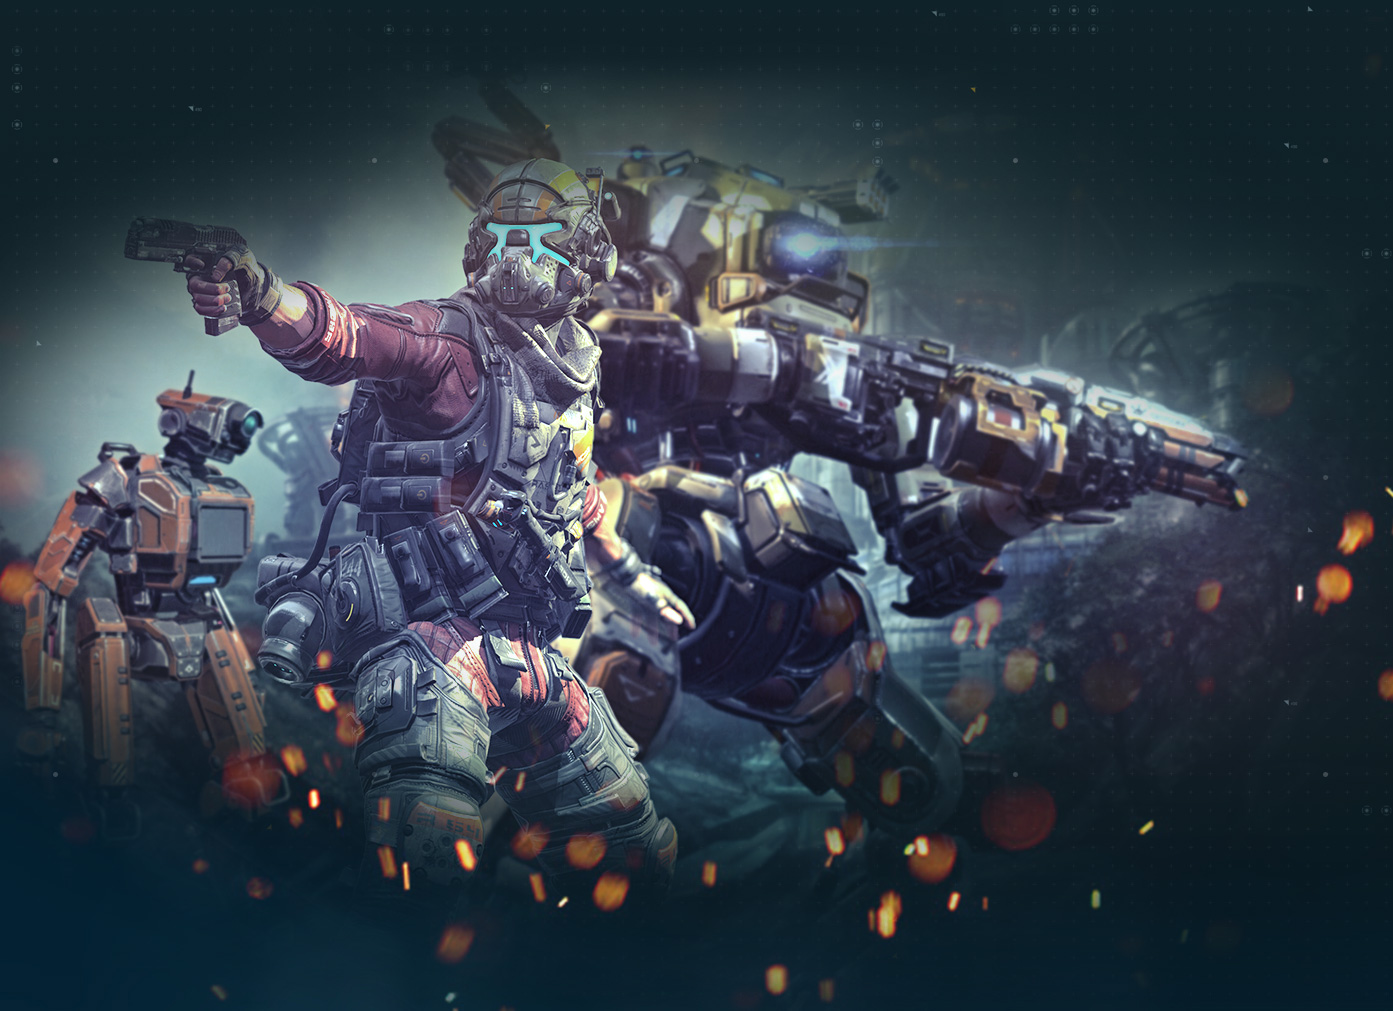 You ll be able to communicate with your titan bt 7274 in titanfall 2